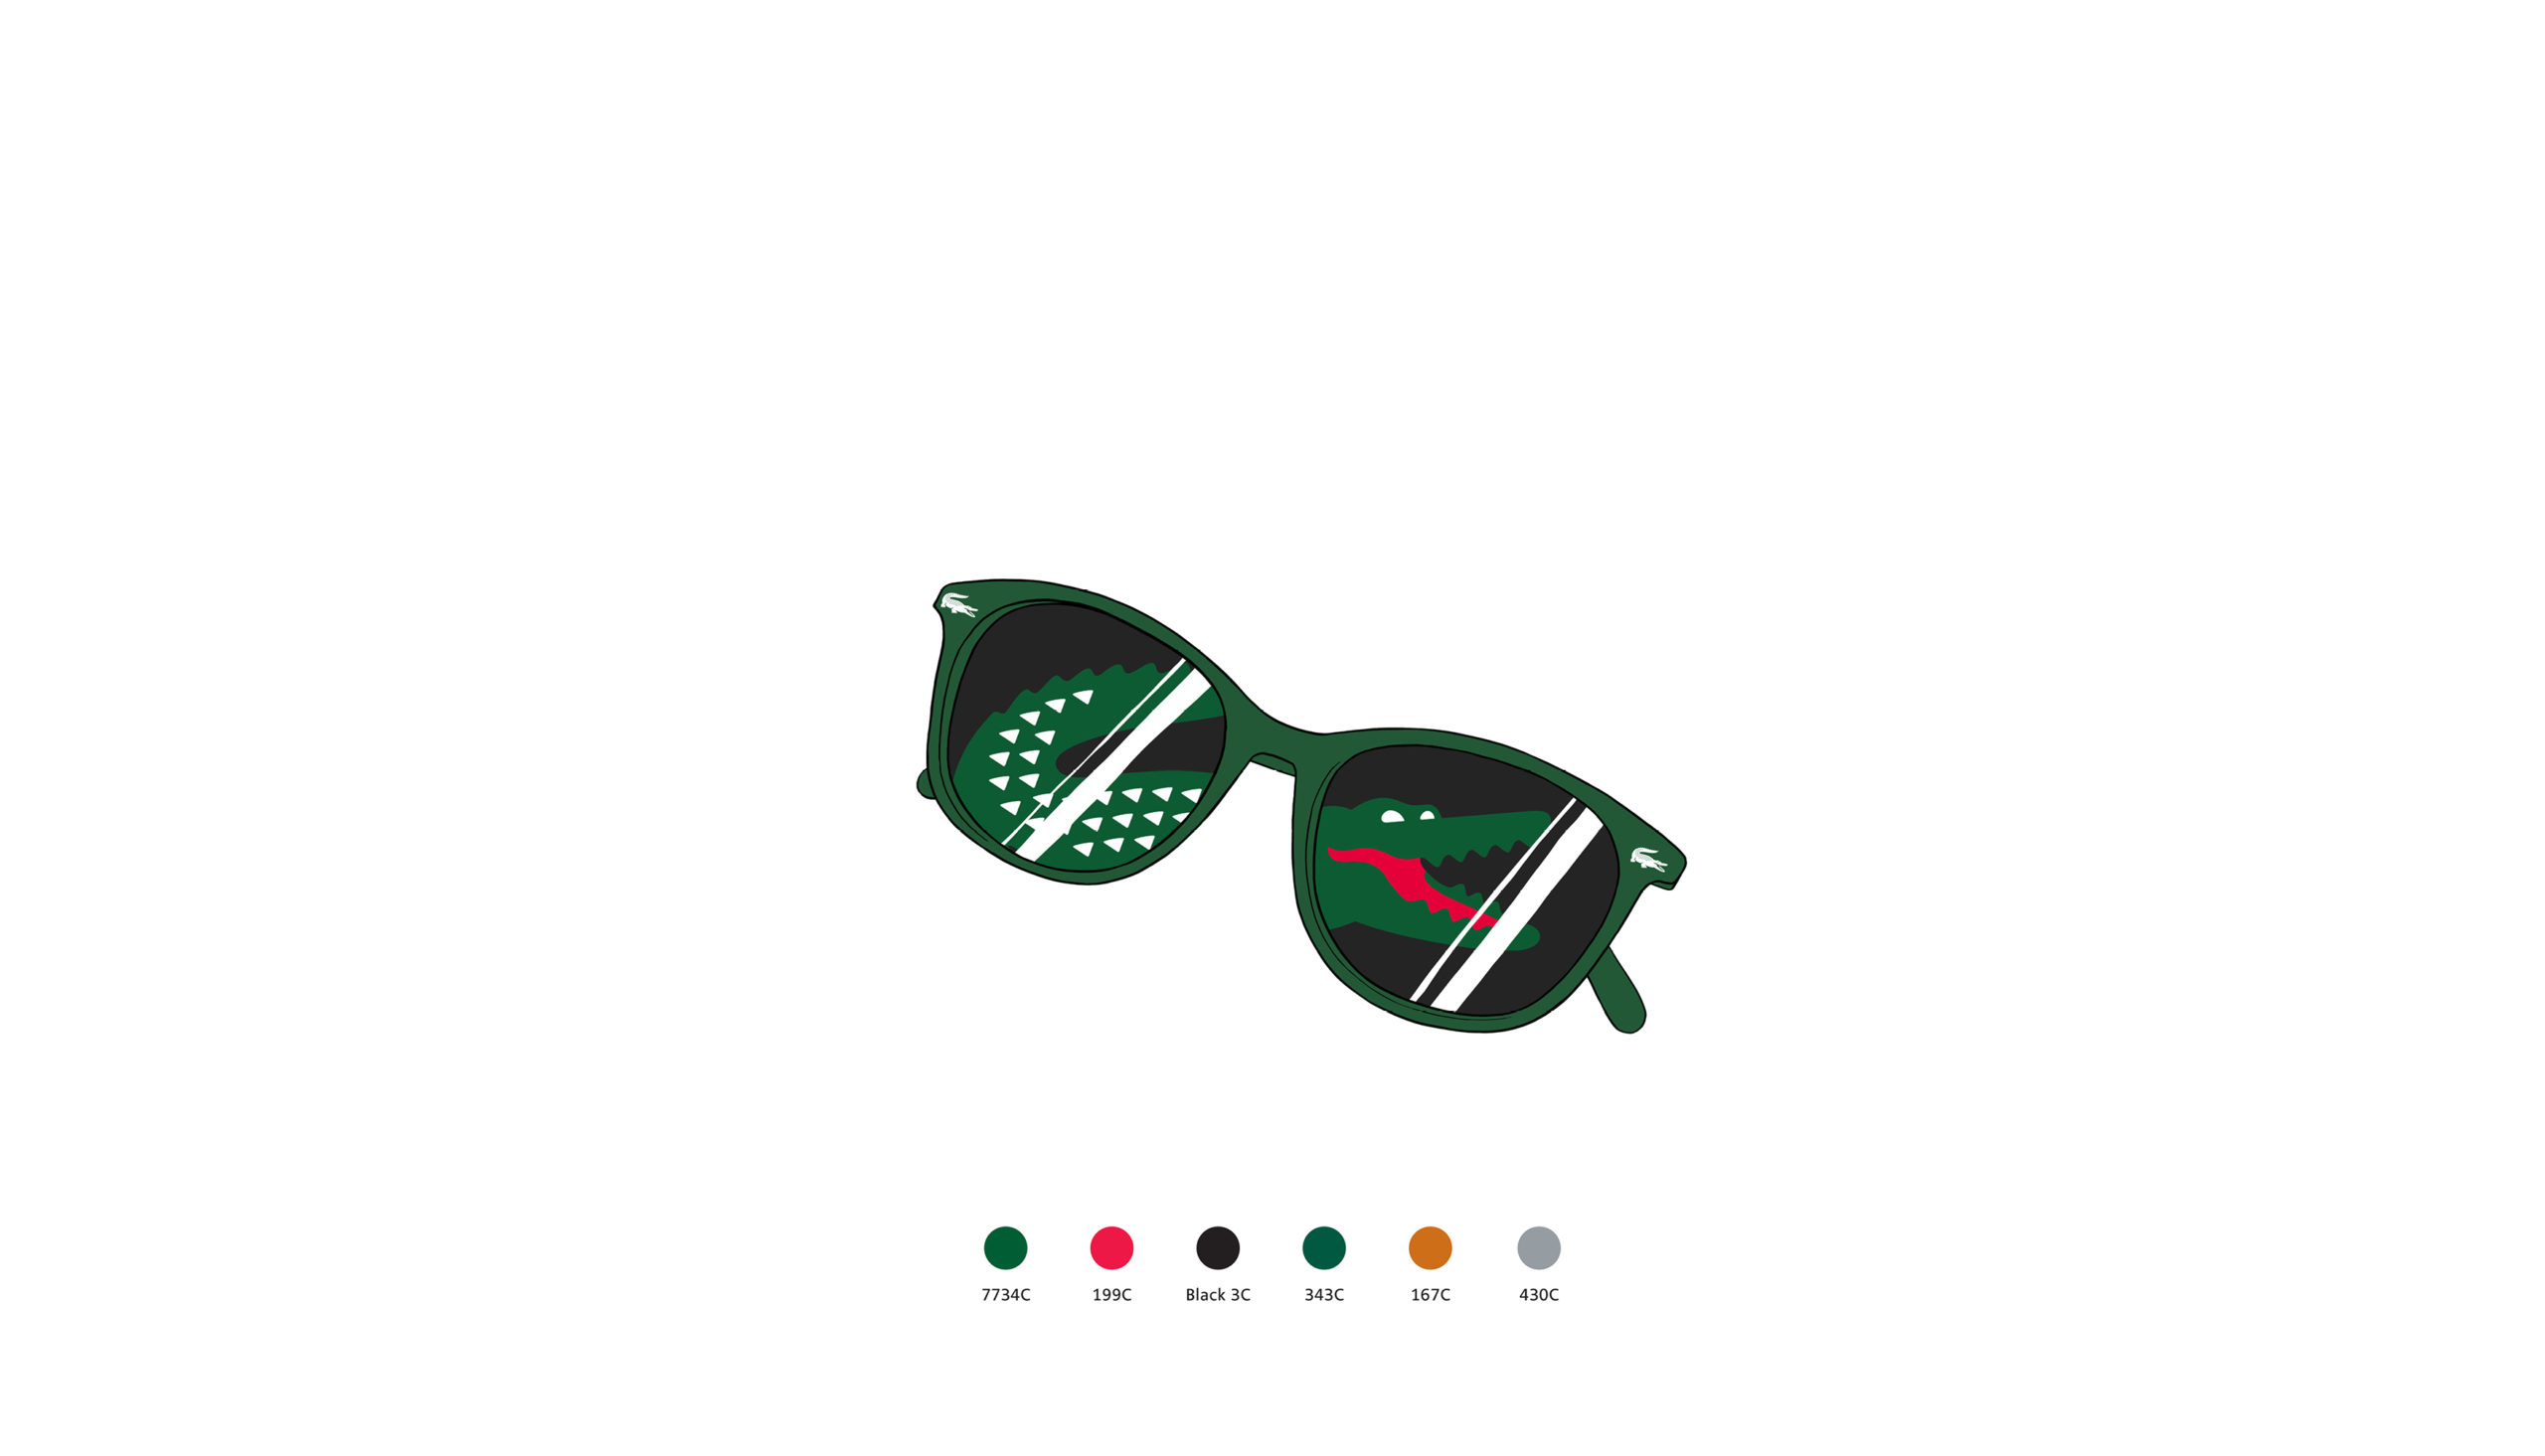 LACOSTE_STICKERS_HOBBYNOTE_R_0831